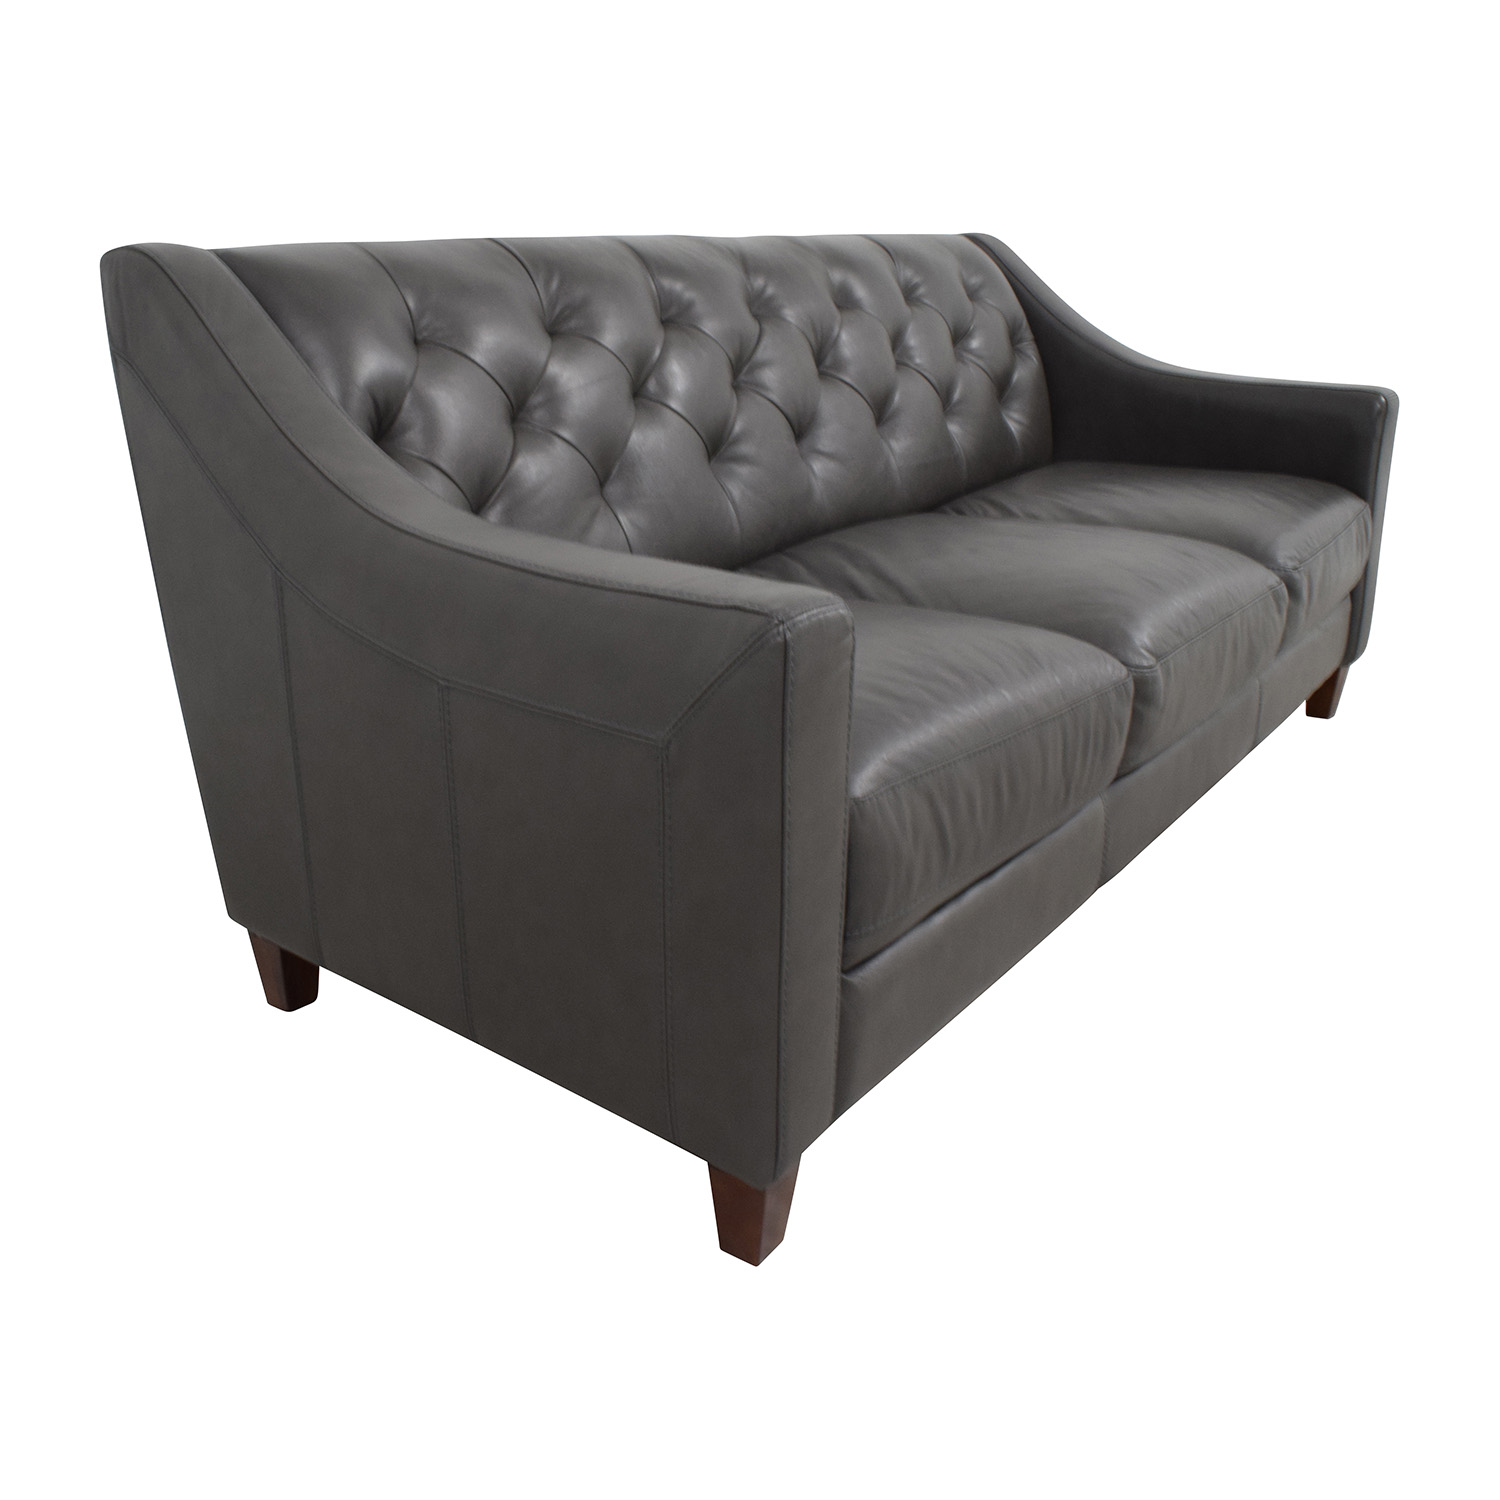 69 off macy 39 s macy 39 s tufted gray leather sofa sofas. Black Bedroom Furniture Sets. Home Design Ideas